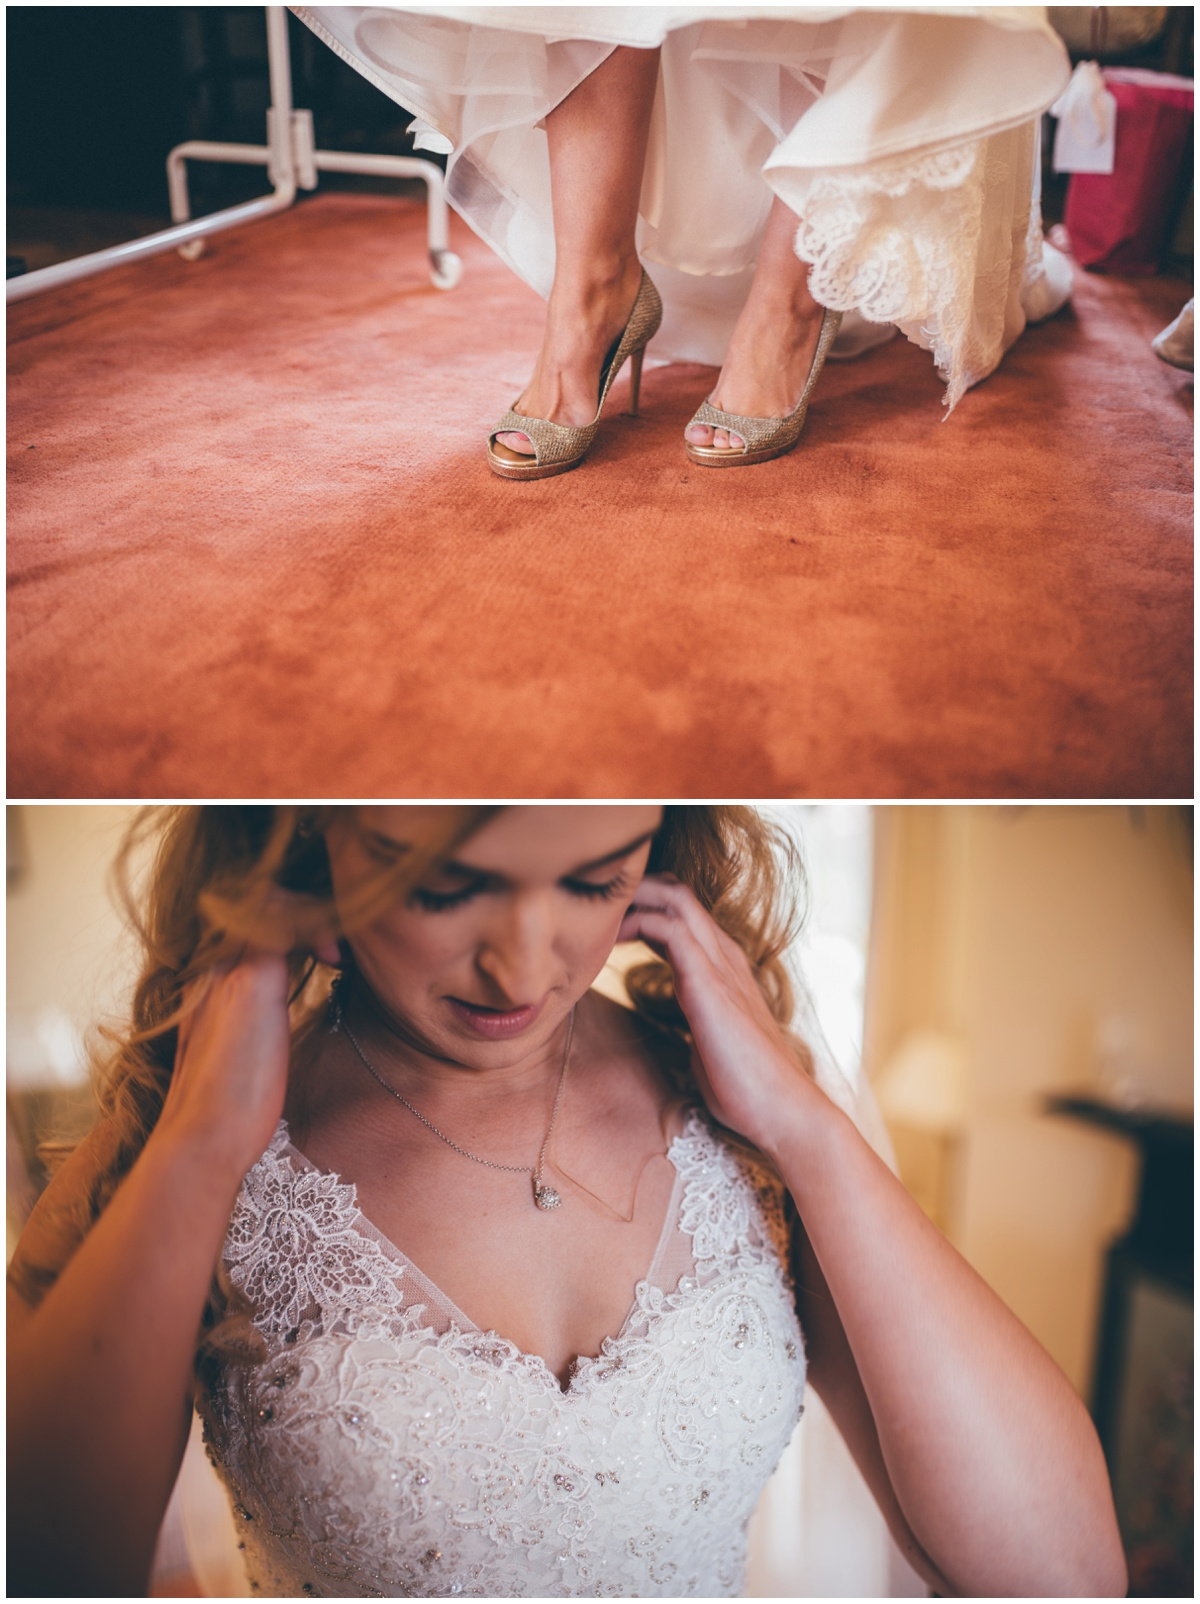 Bride dresses on her weddin morning, puts on her Jimmy Choos and diamond necklace.